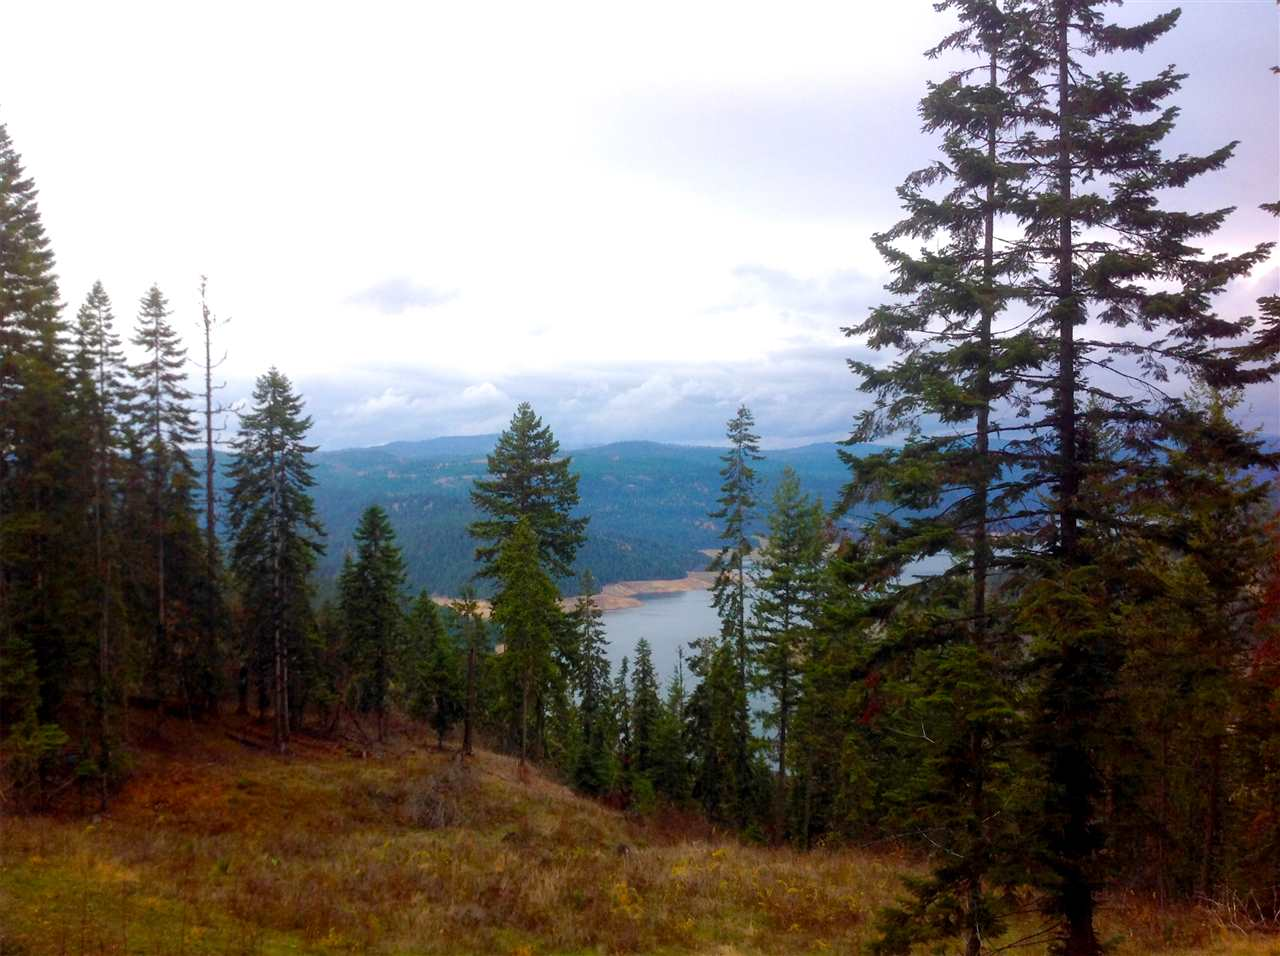 Recreational Property for Sale at Parcel 13 Tie Creek Road Parcel 13 Tie Creek Road Orofino, Idaho 83554